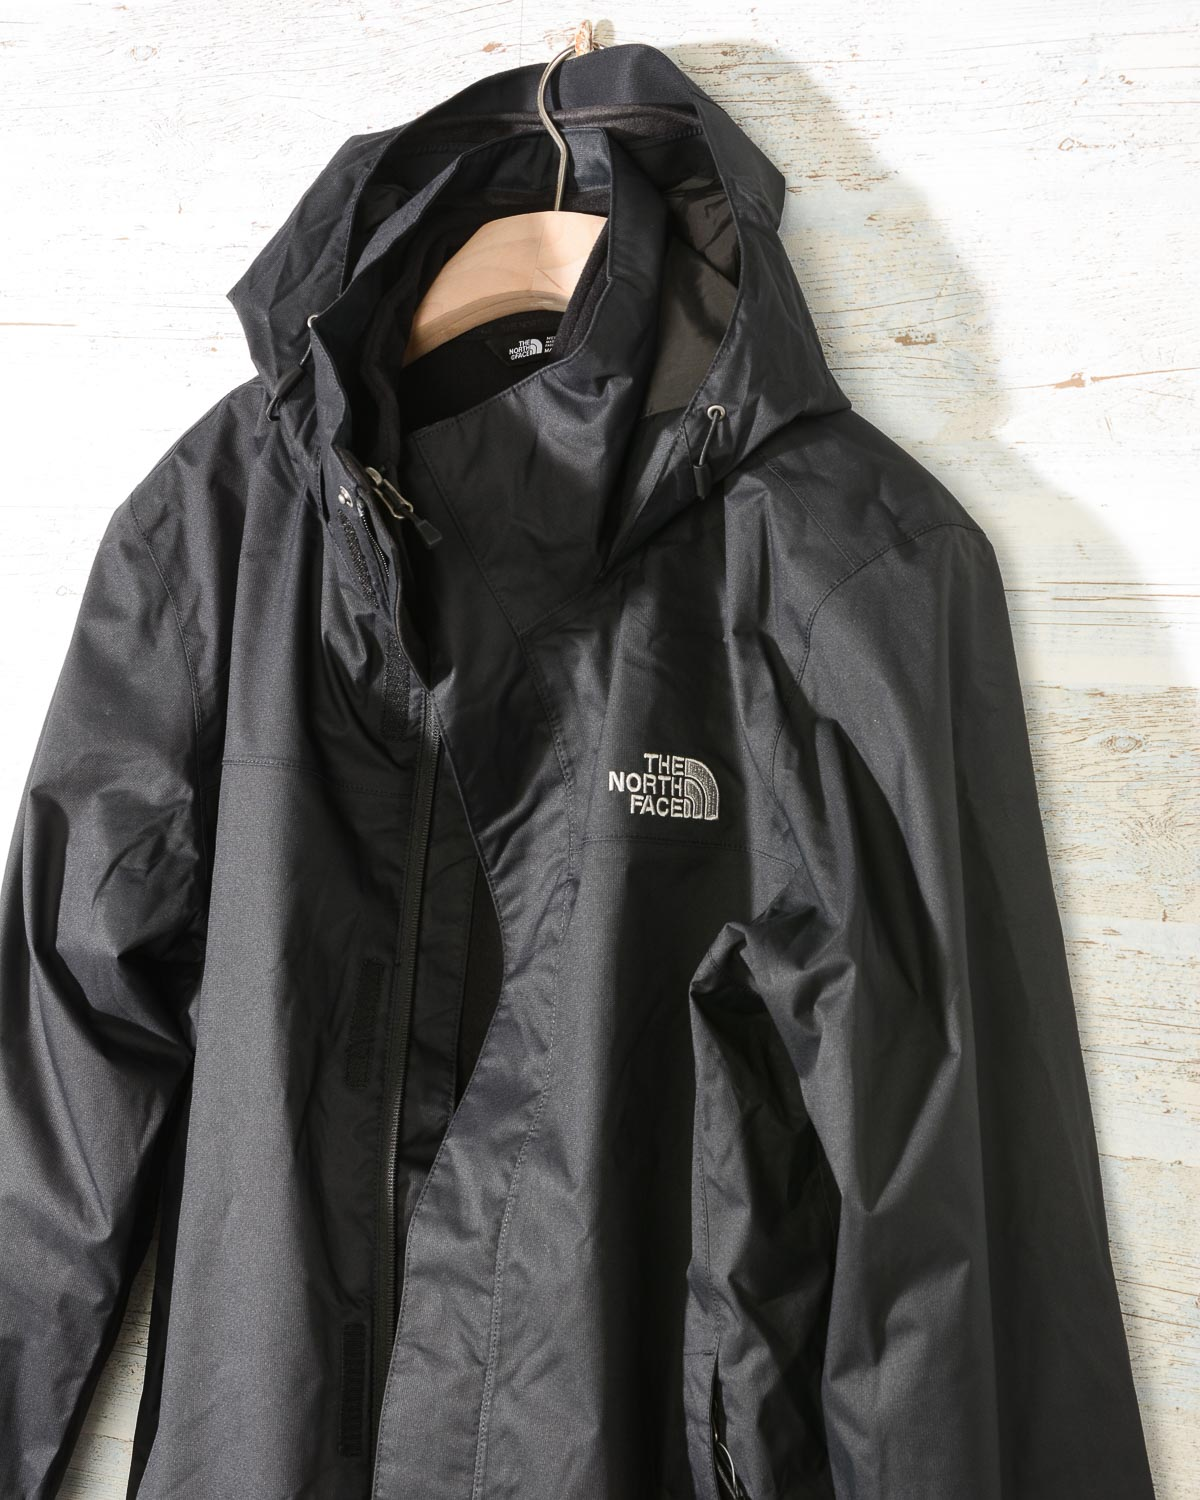 Giacca Uomo The North Face Evolve II Triclimate Nero T0CG55JK3 ... 430f8325185d